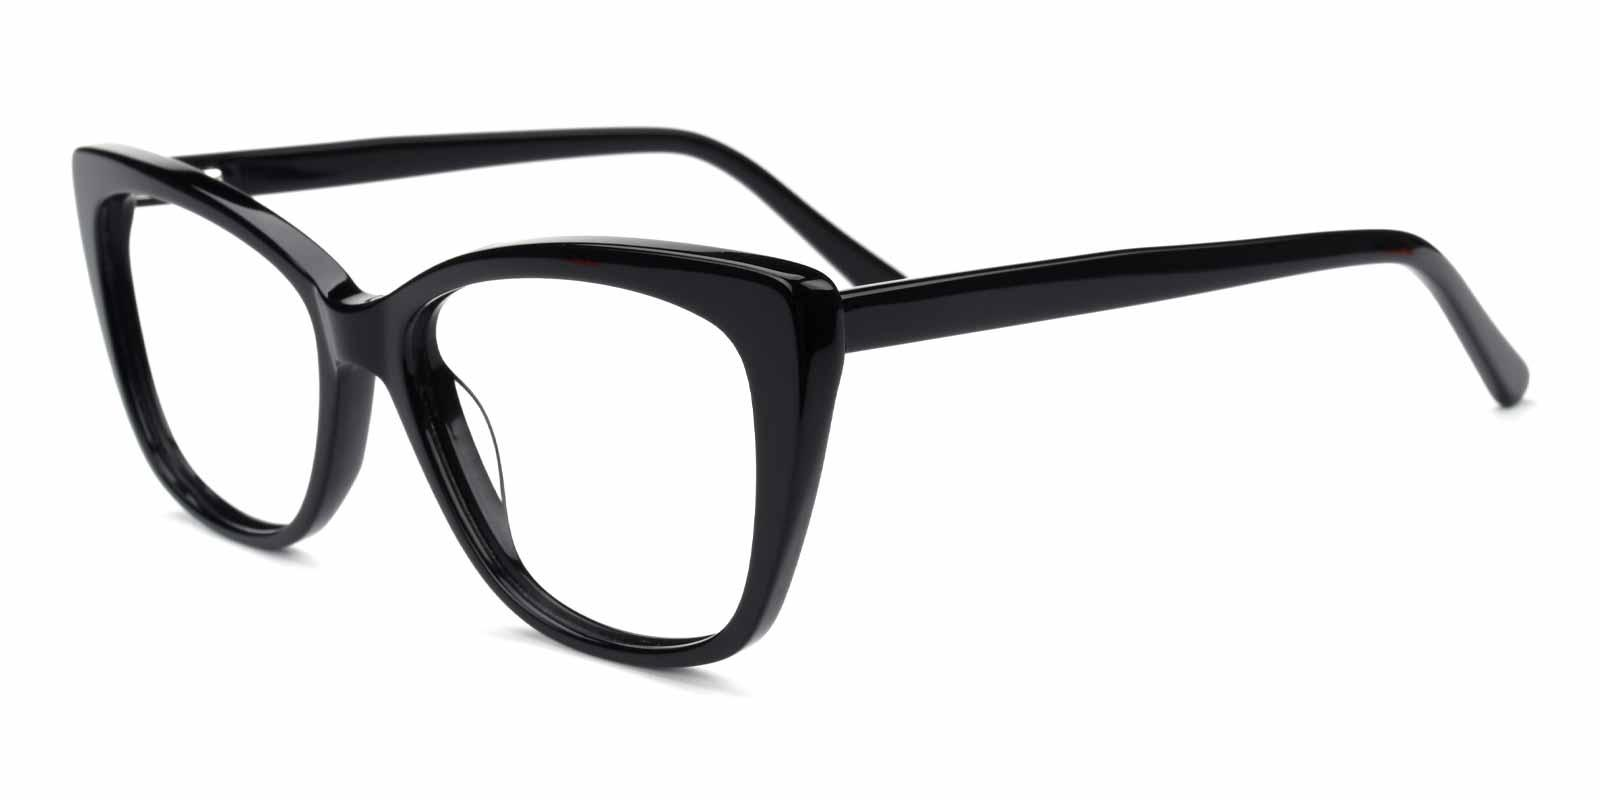 Kiko-Black-Cat-Acetate-Eyeglasses-additional1